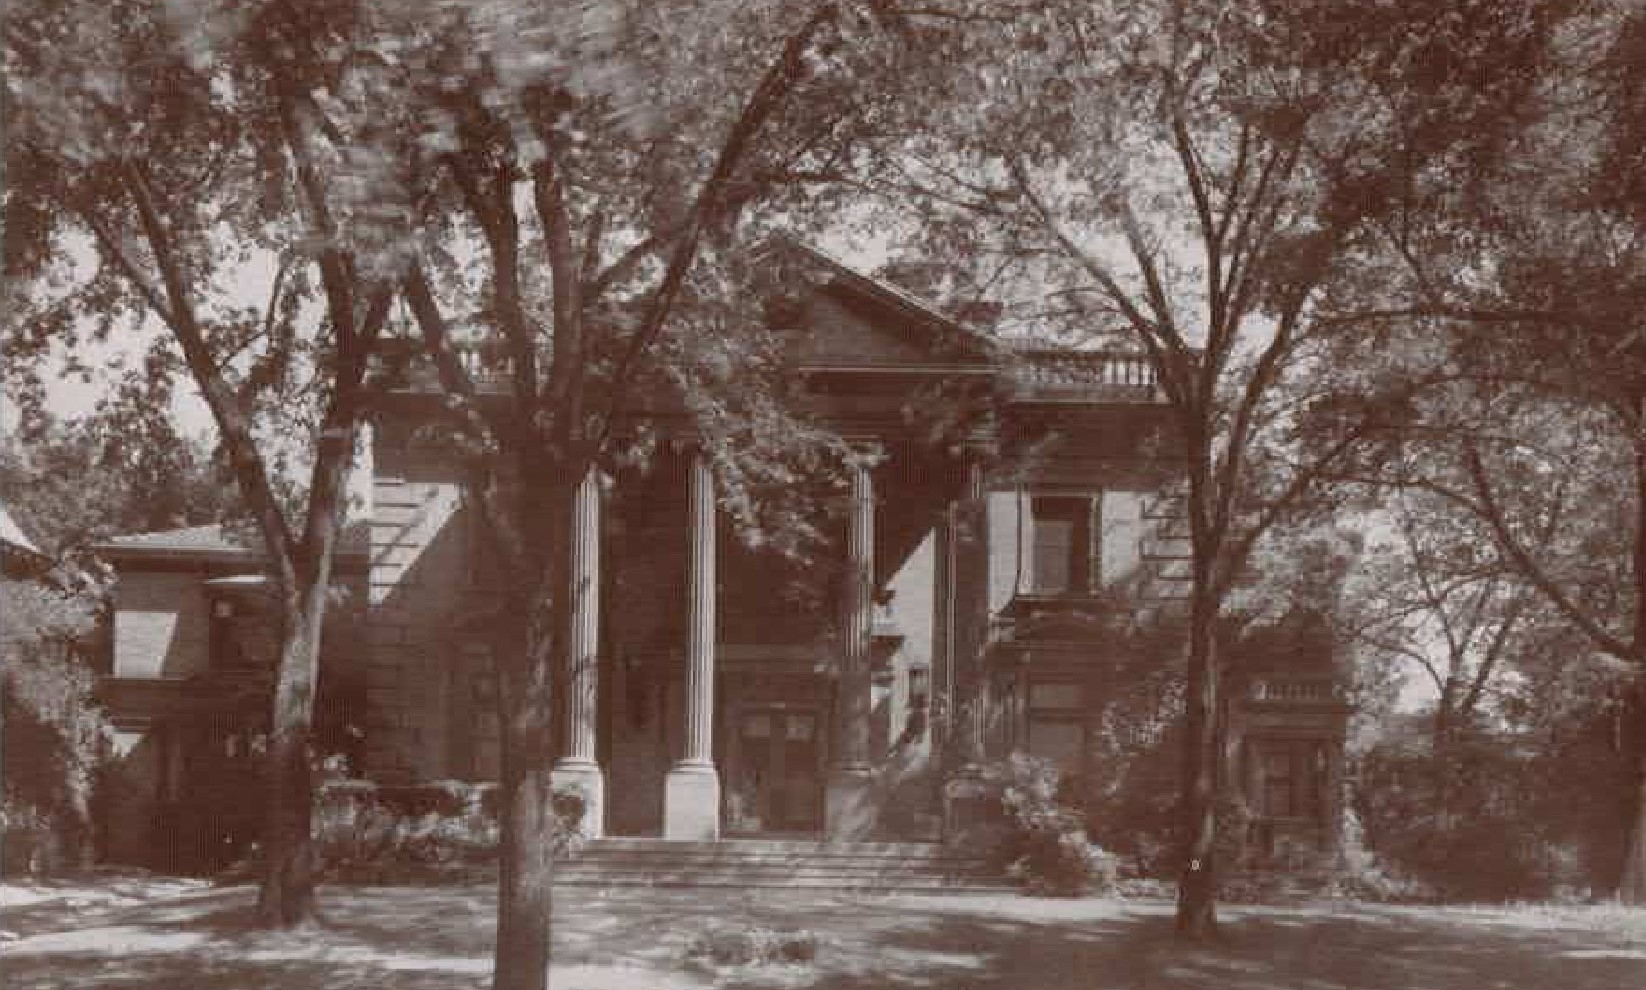 The Society's headquarters were located in the stately Pabst mansion from 1944-1970.